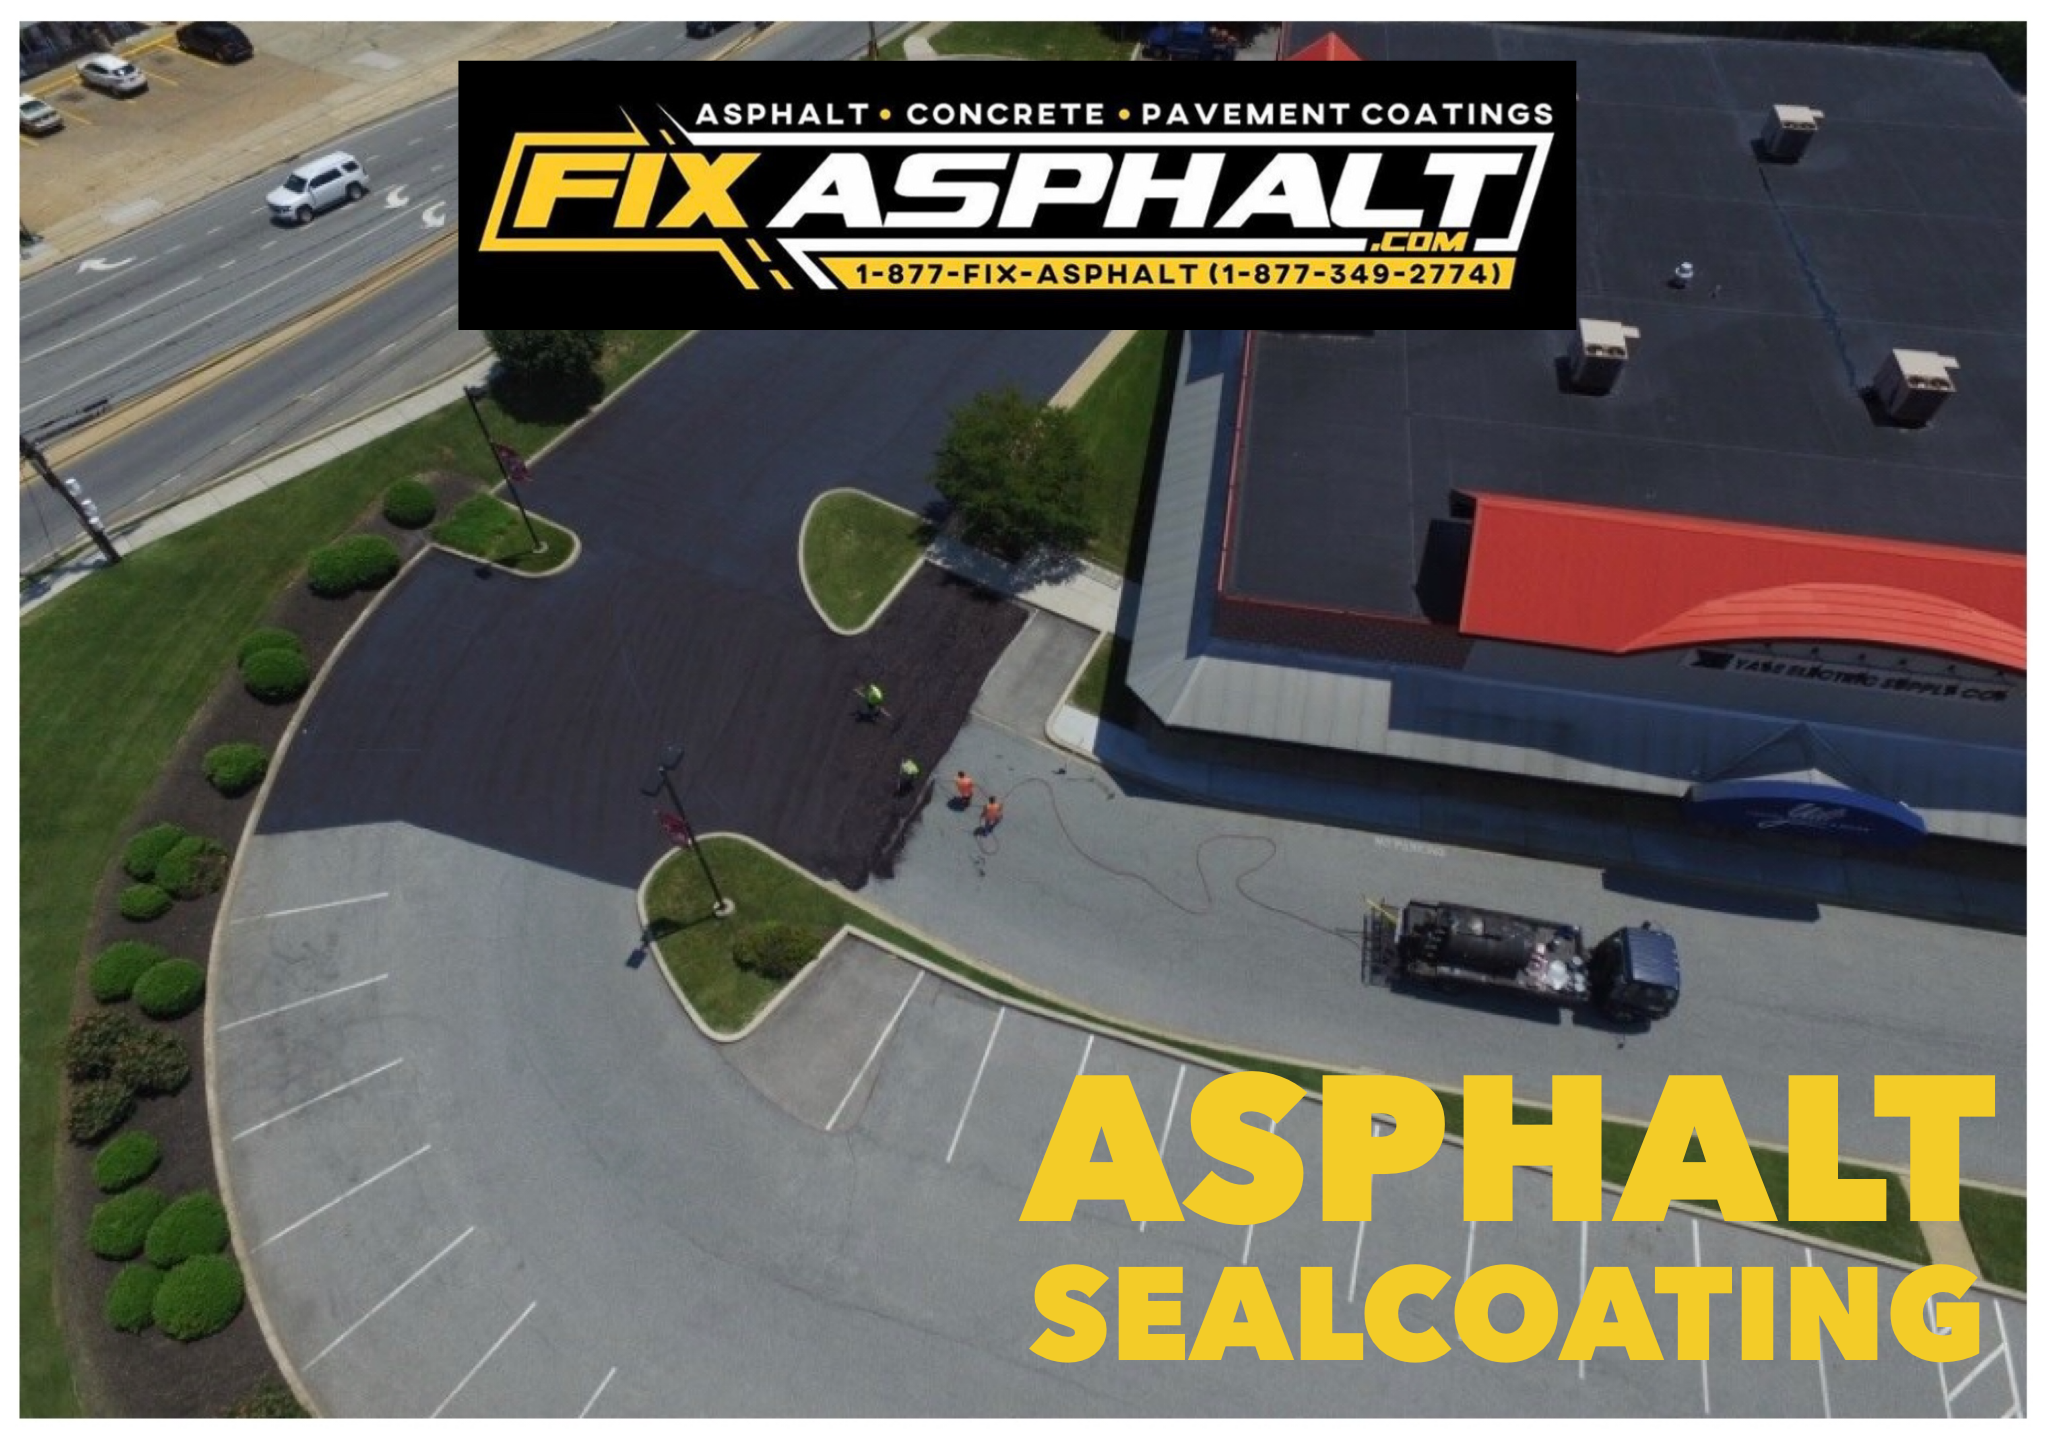 New Jersey Asphalt Sealcoating